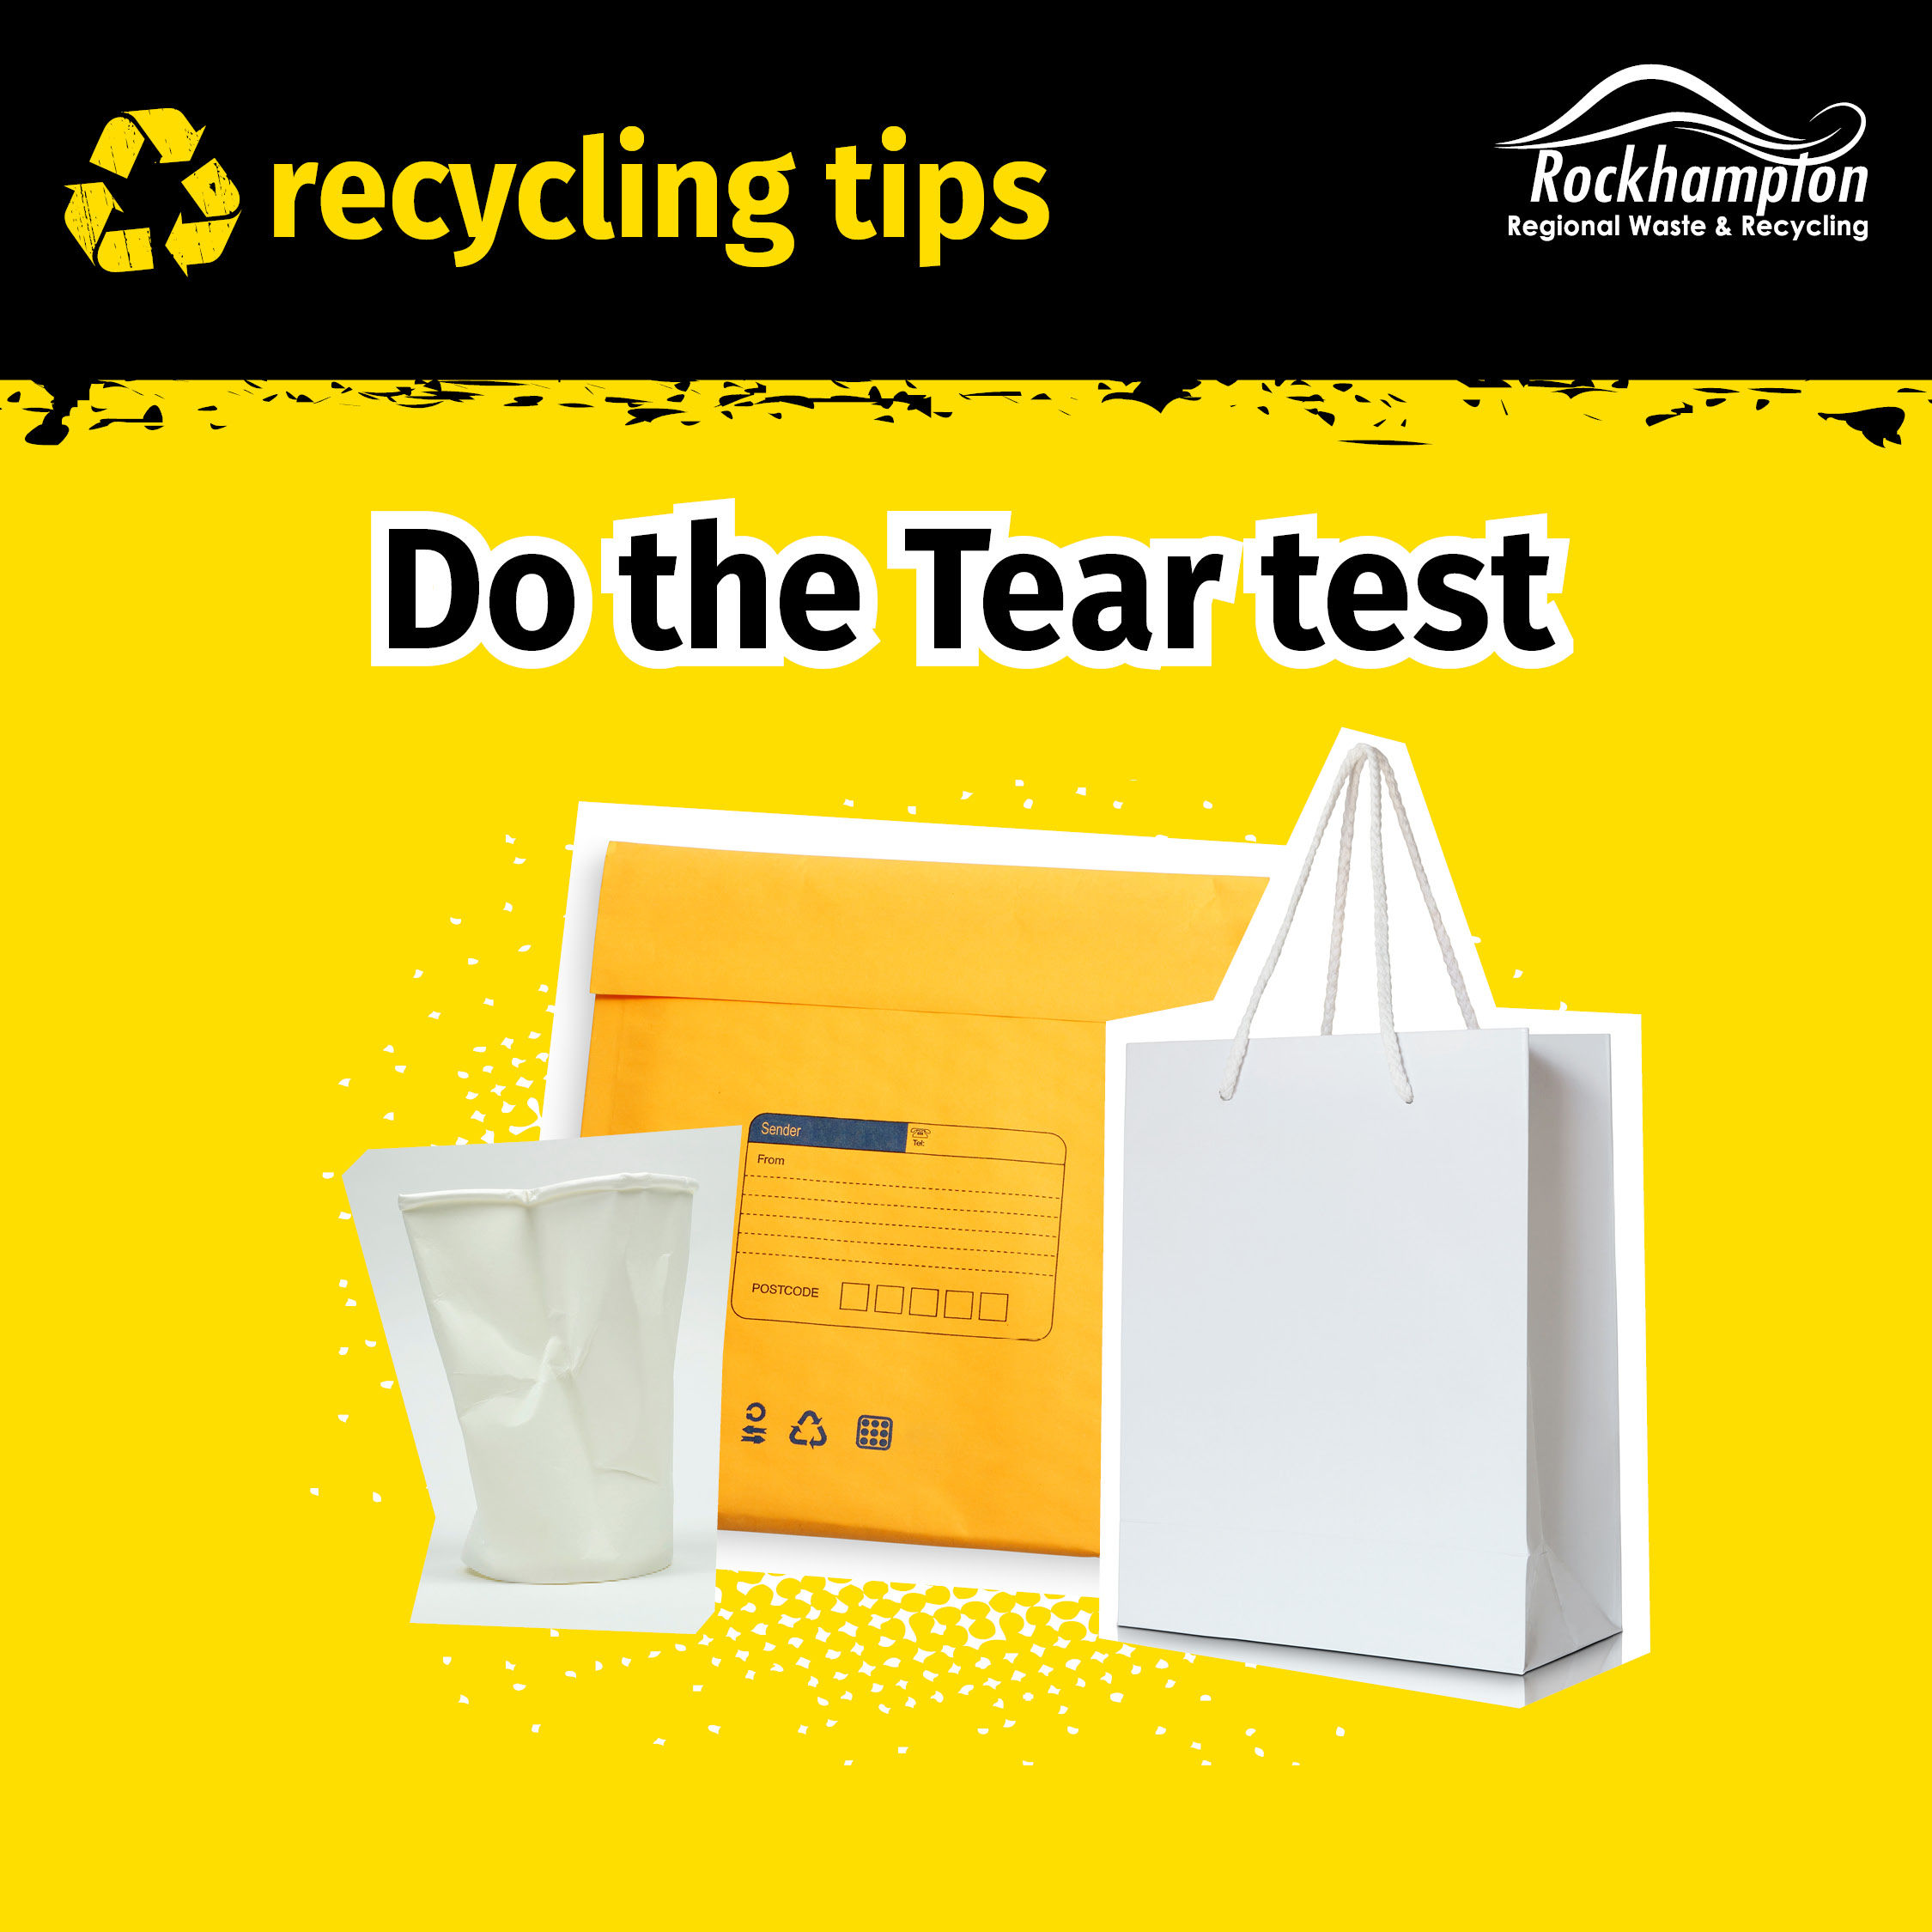 Recycling-Tips-4-Do-the-tear-test